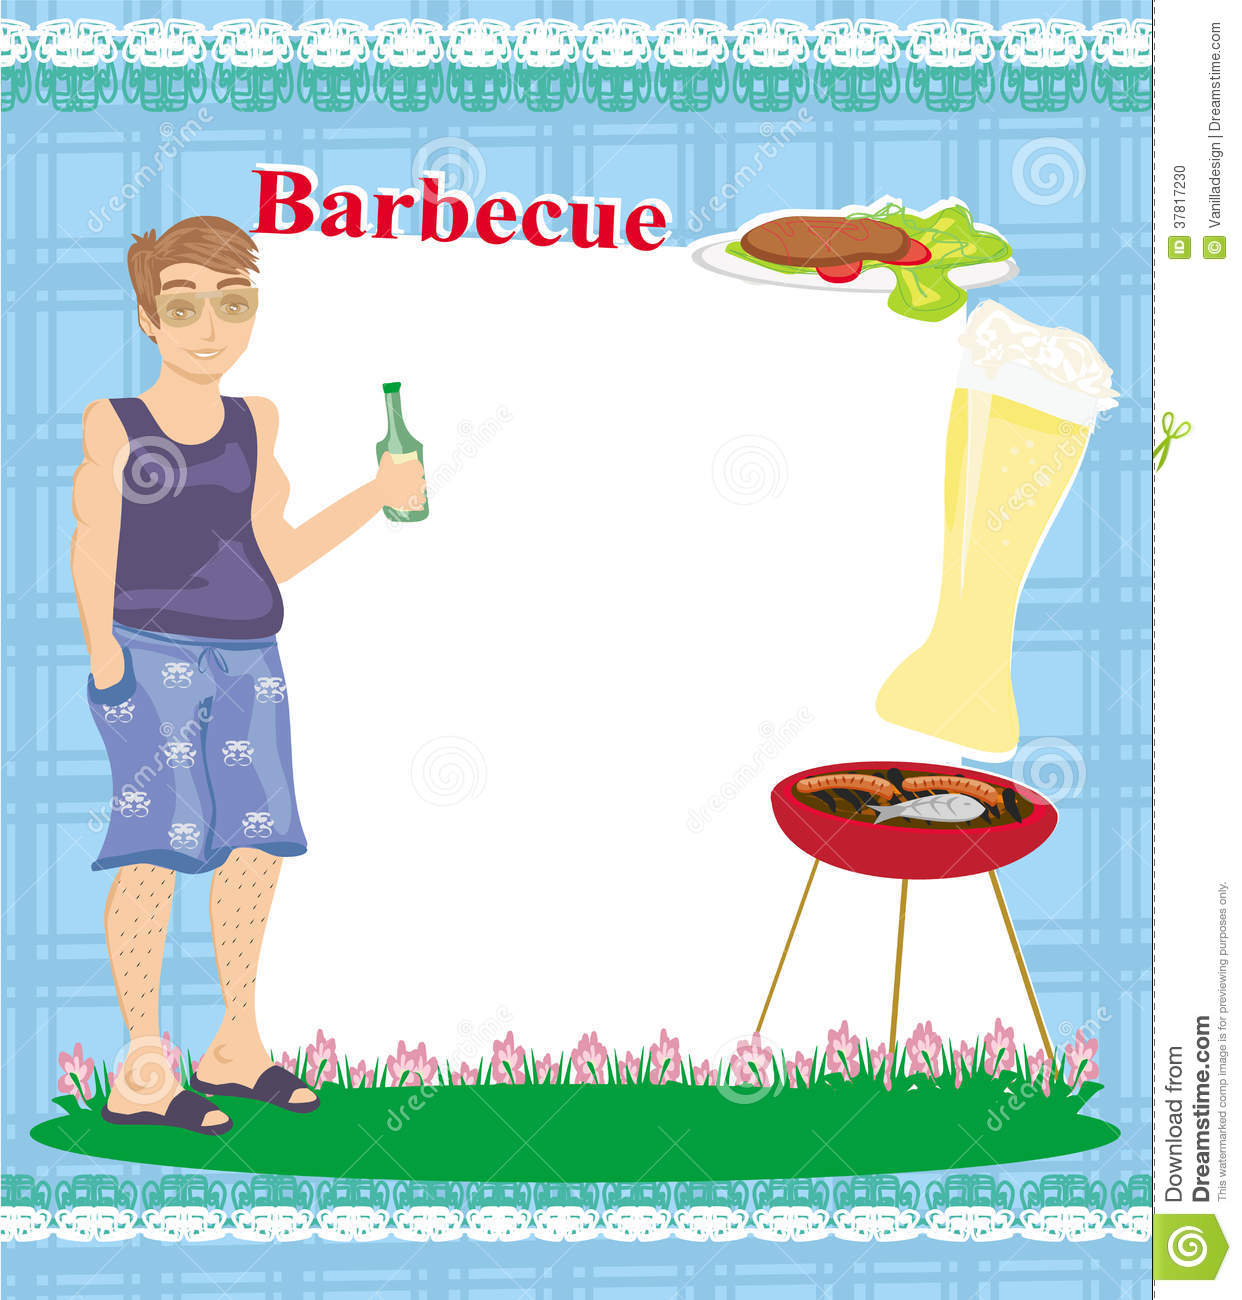 Barbecue Party Invitation Royalty Free Stock Image - Image: 31611816